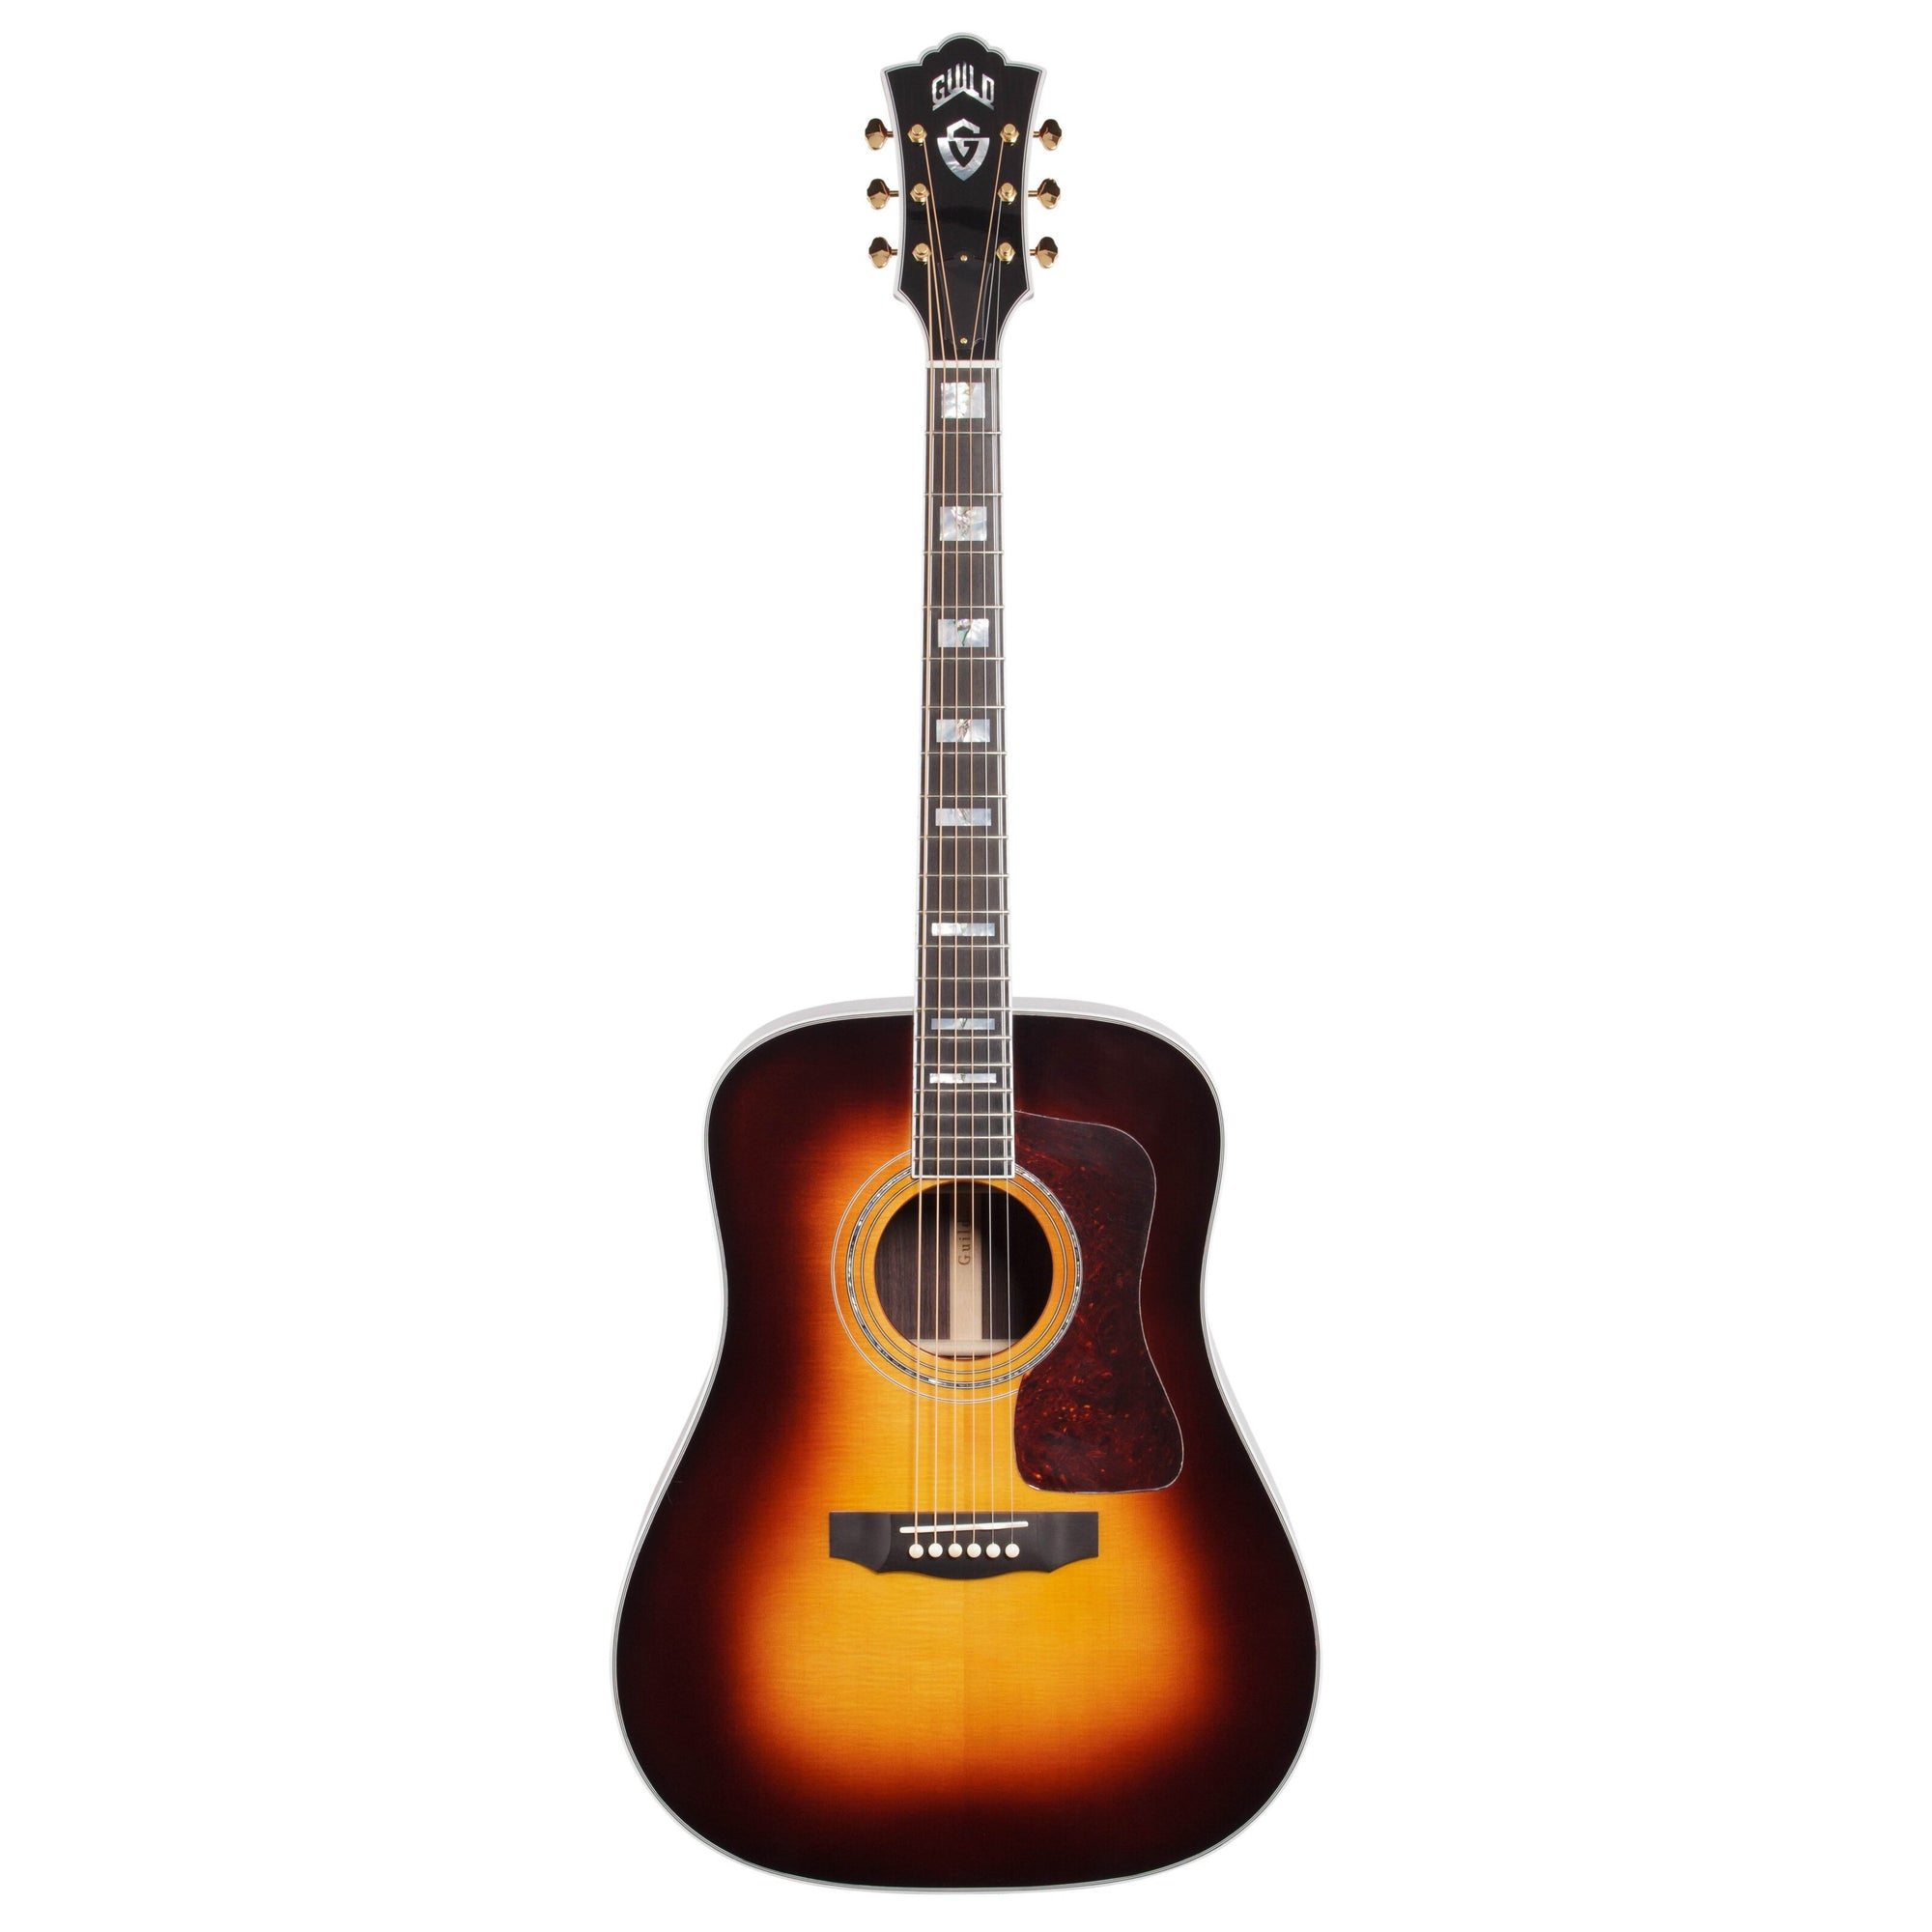 Guild D-55 Acoustic Guitar (with Case), Antique Sunburst